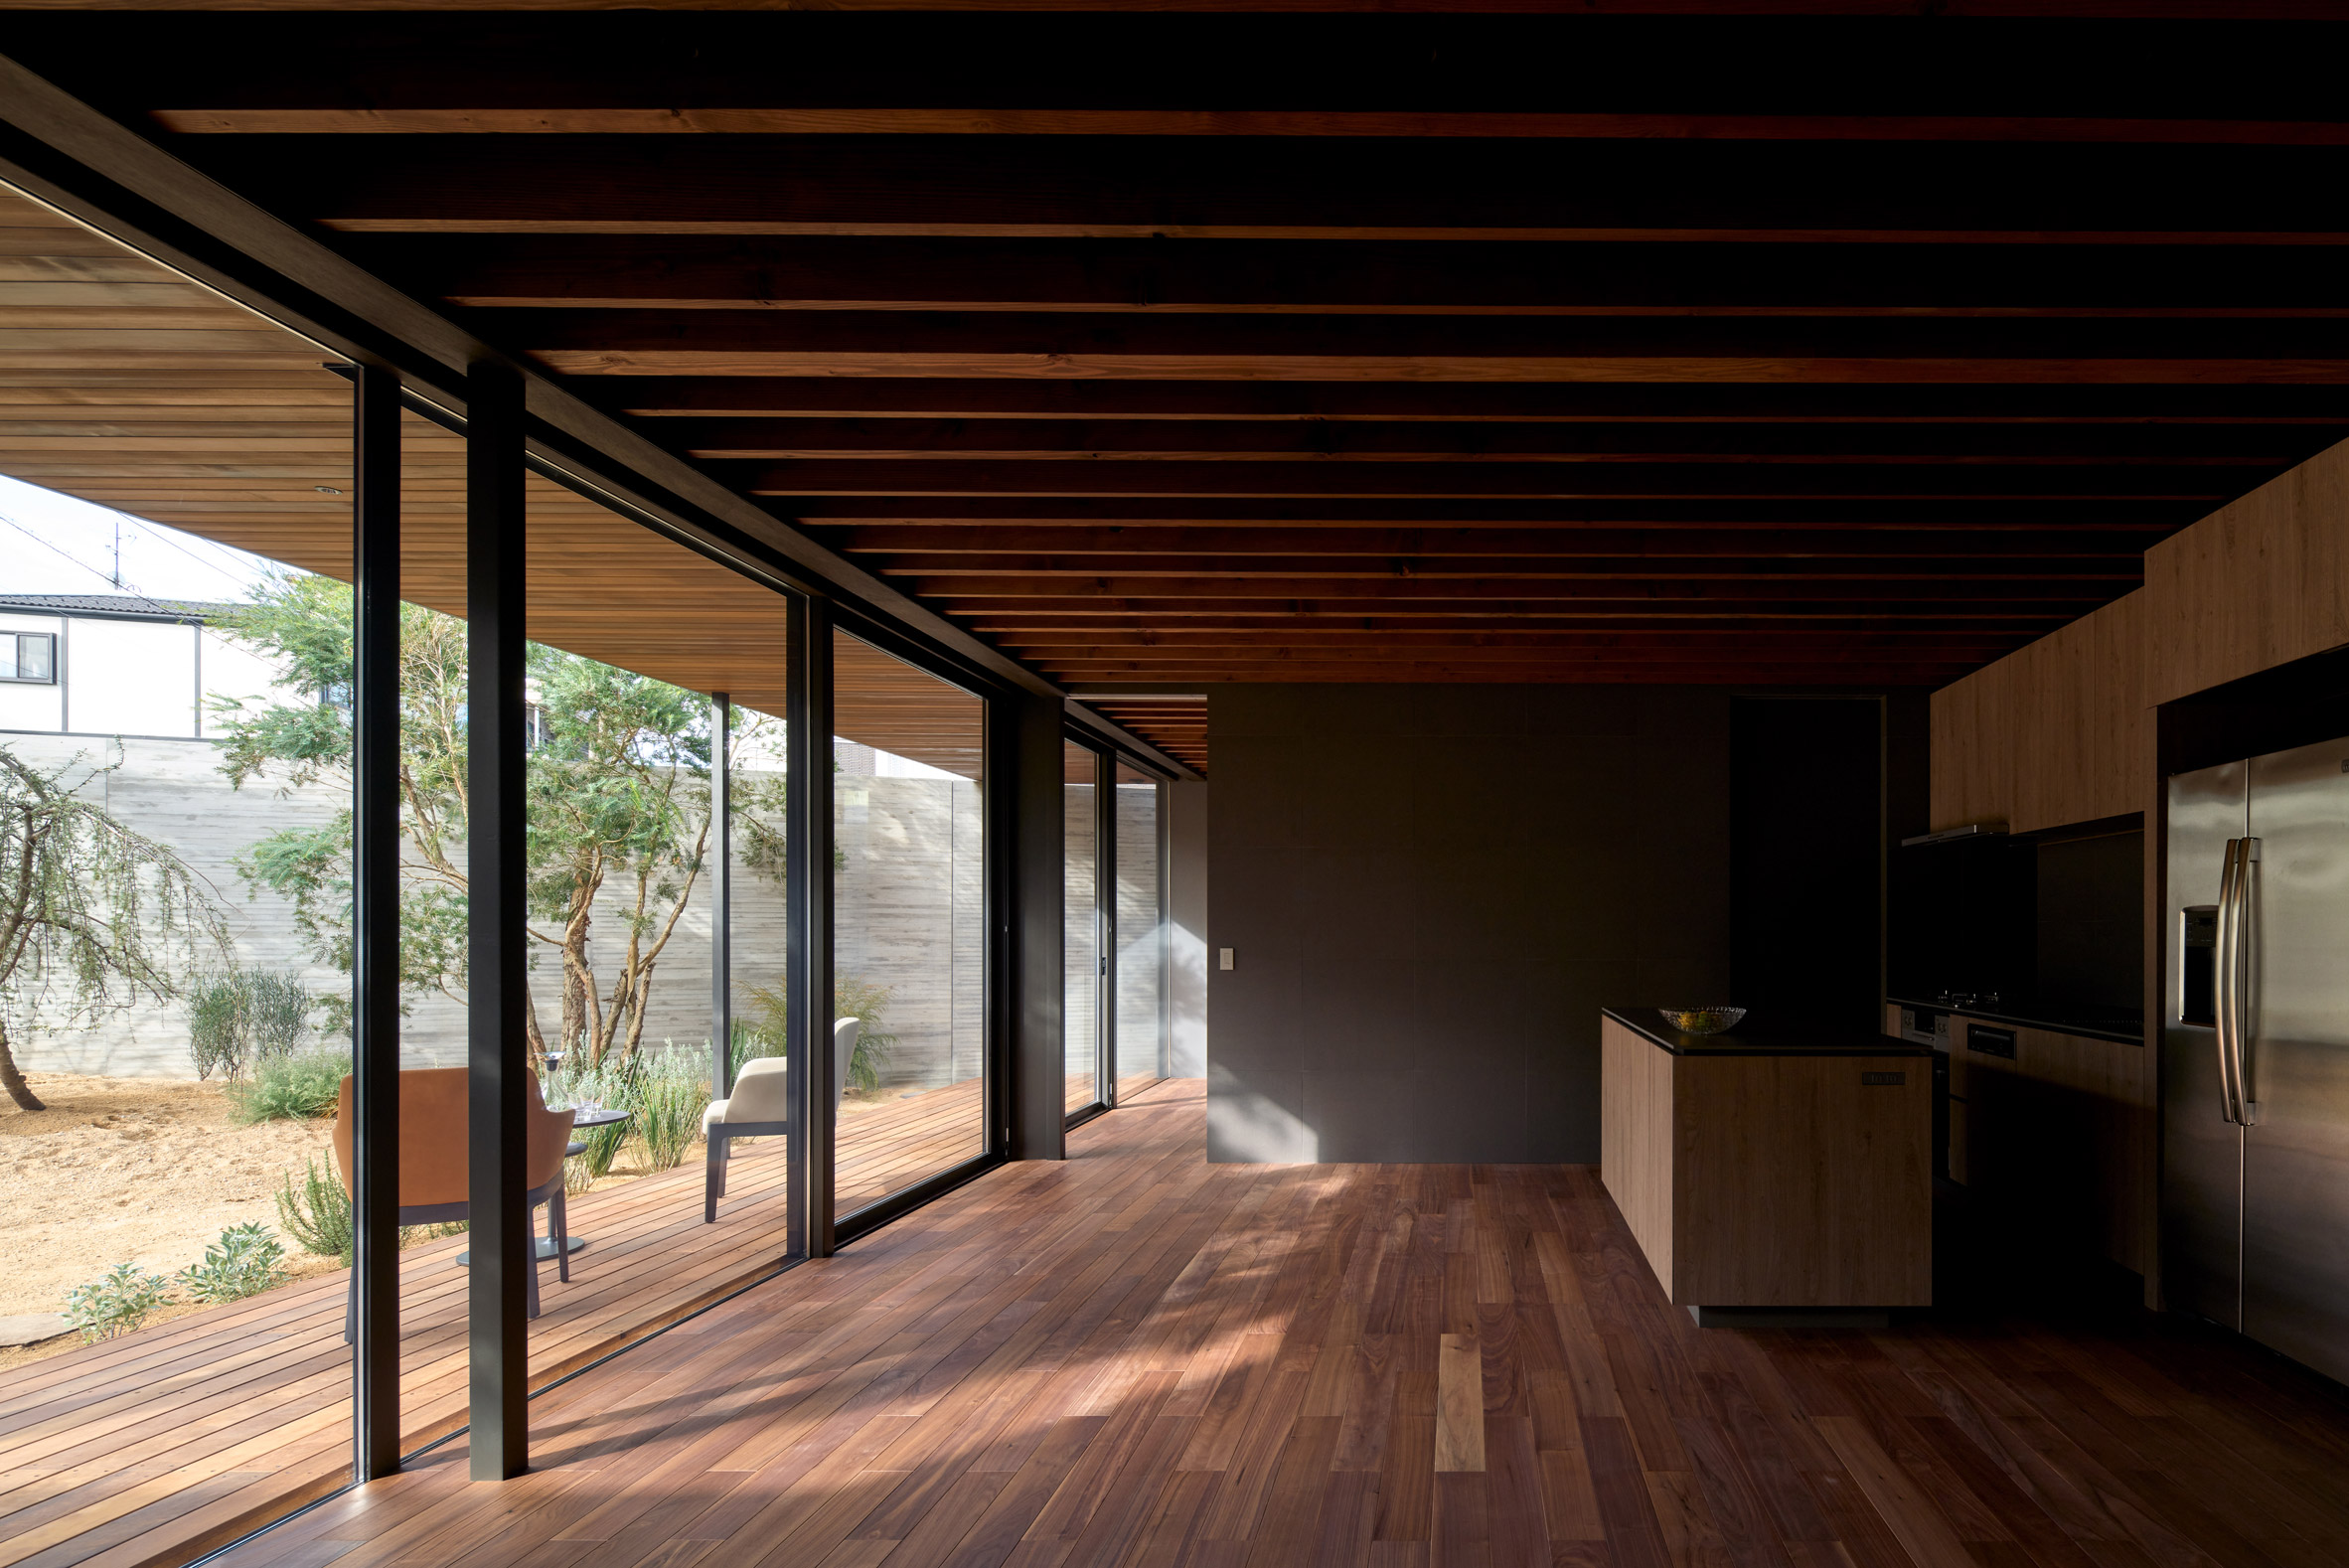 Exposed beams line the ceiling by Apollo Architects & Associates